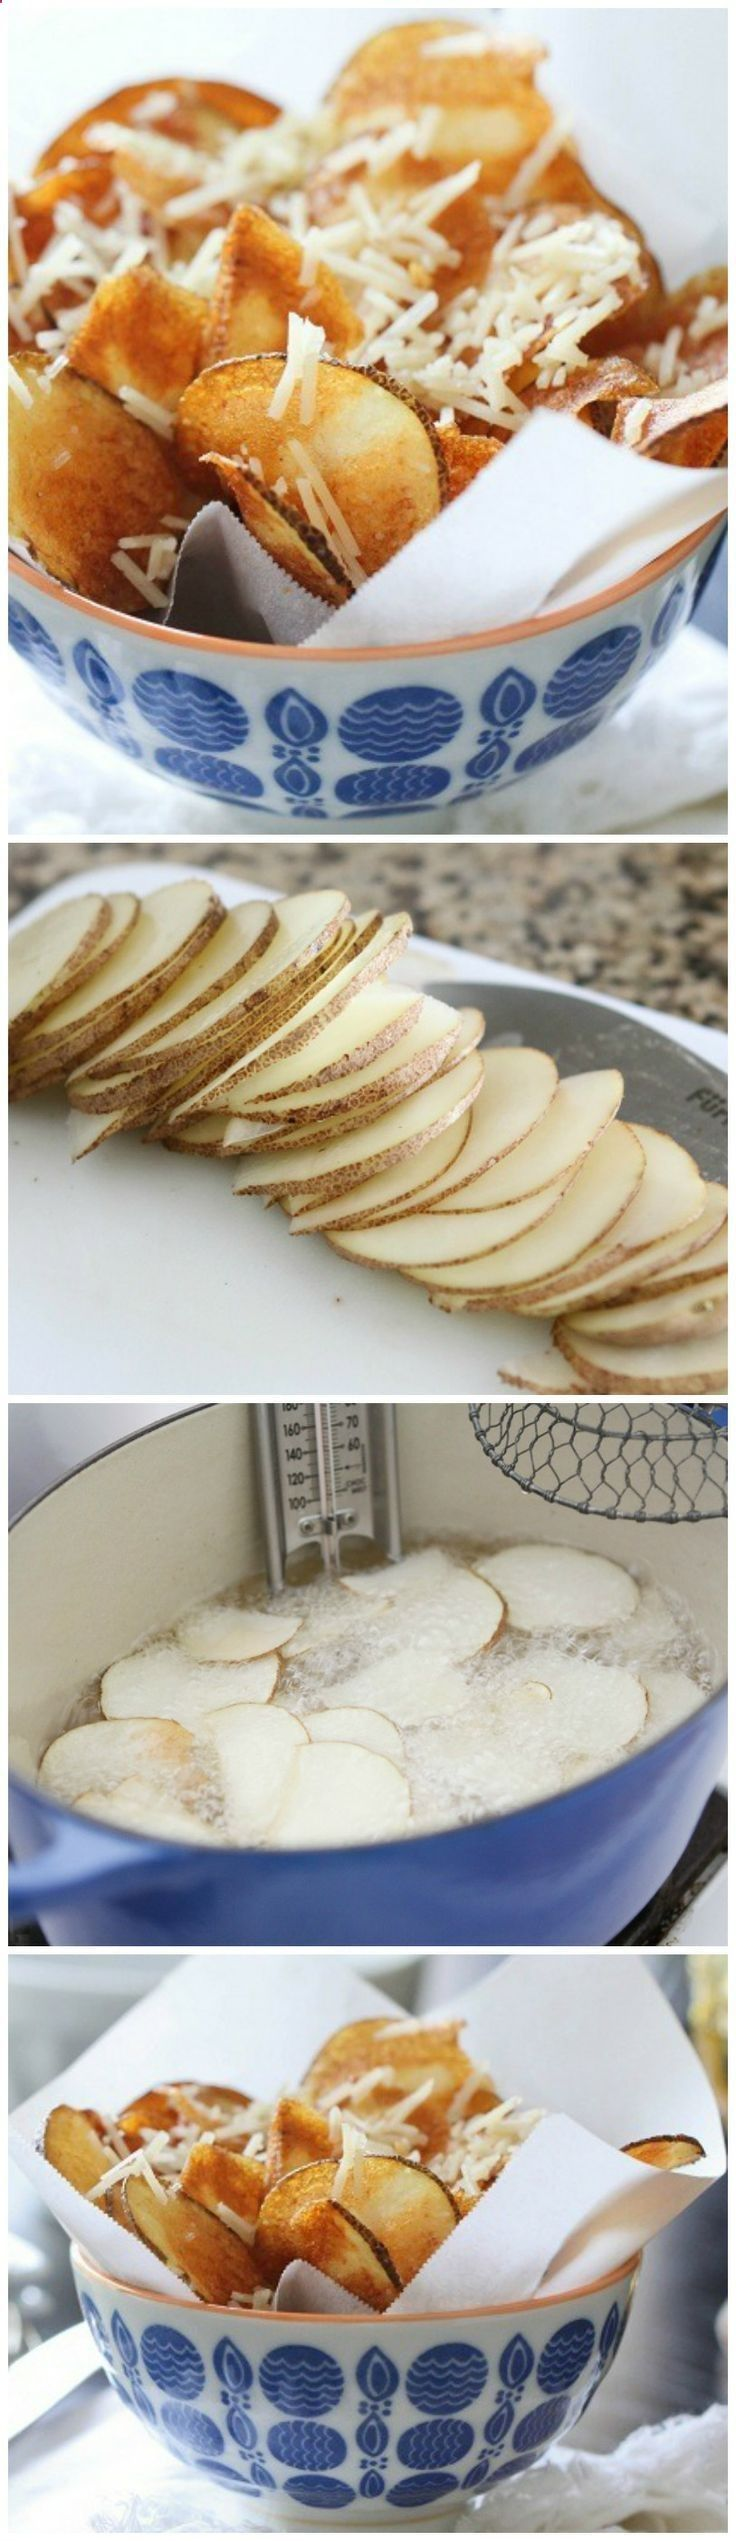 Homemade Parmesan Potato Chips...Crispy and so delicious!